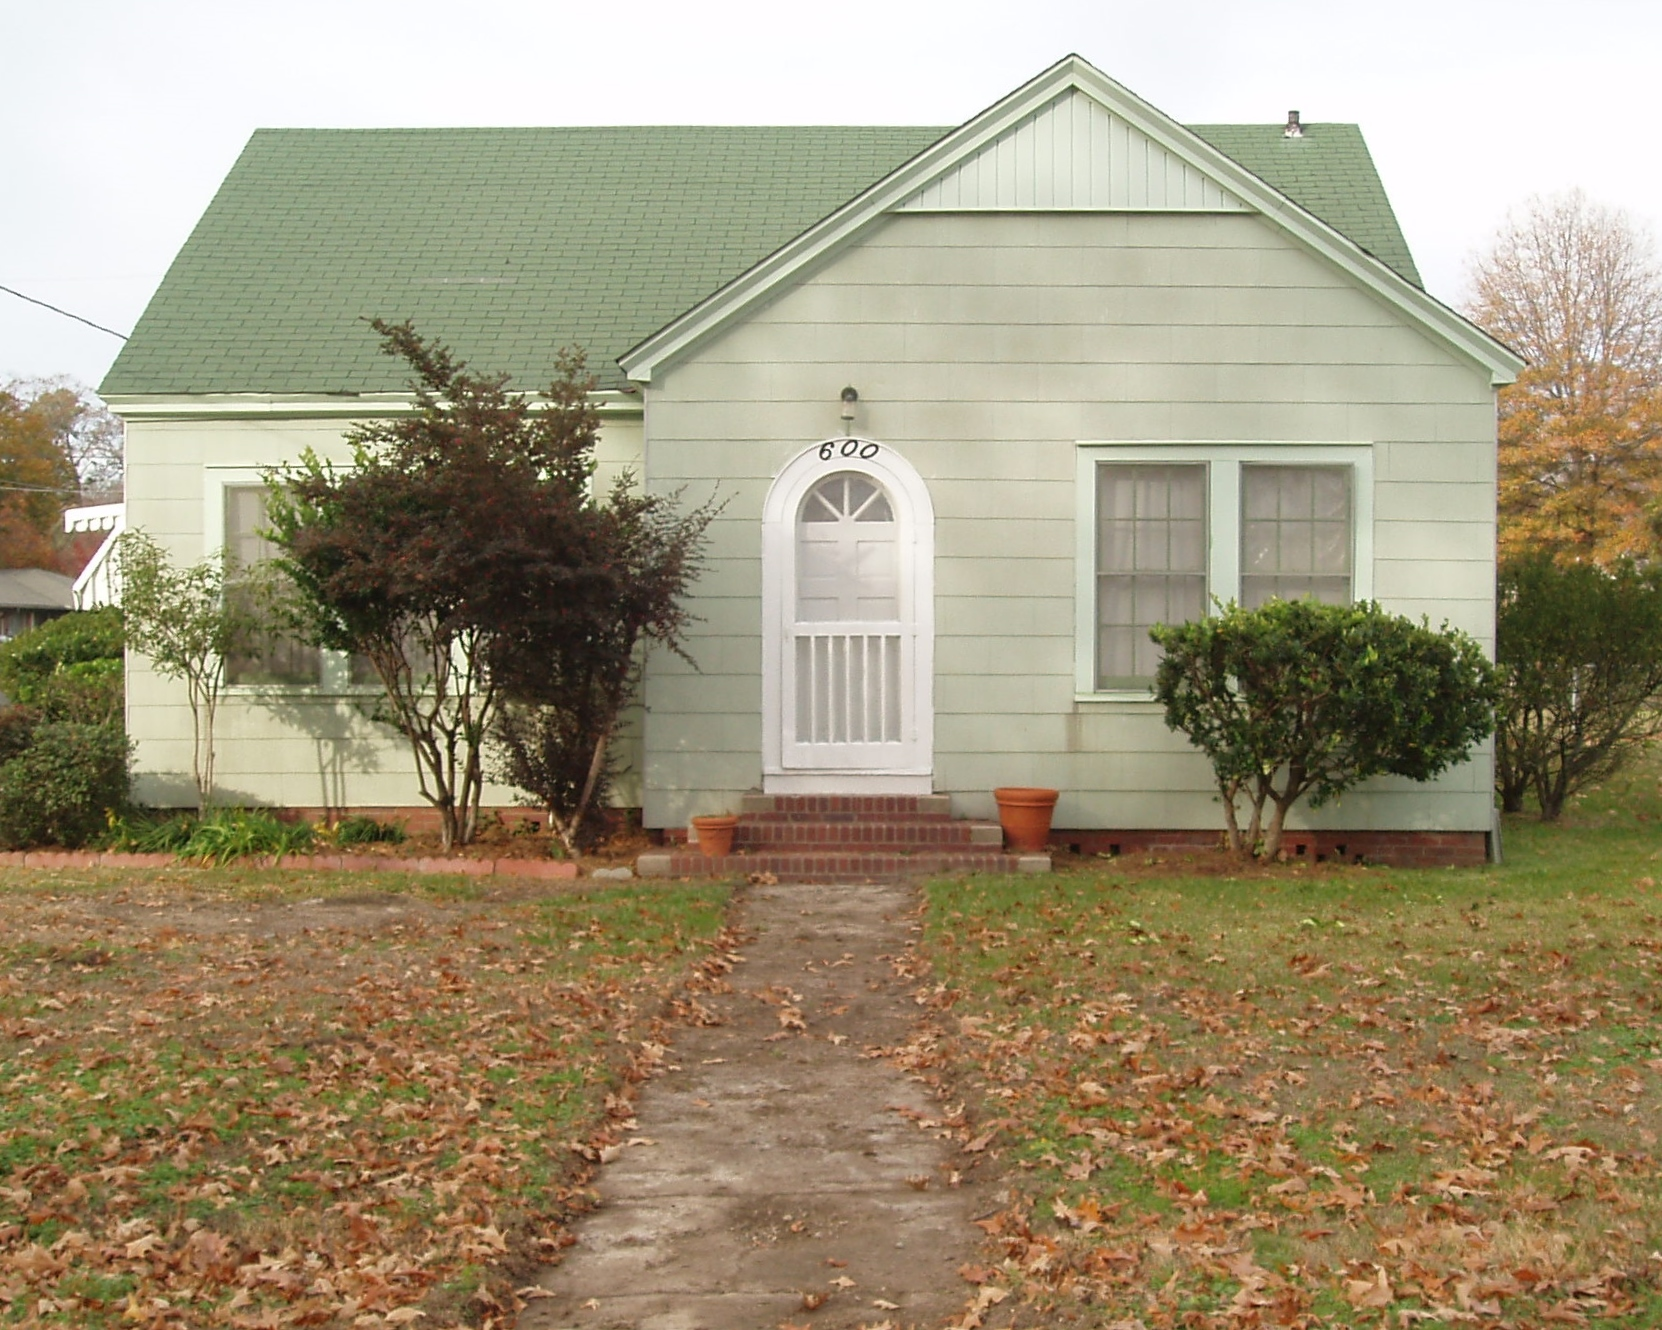 600 E. Noble, Oak Grove, Louisiana 71263